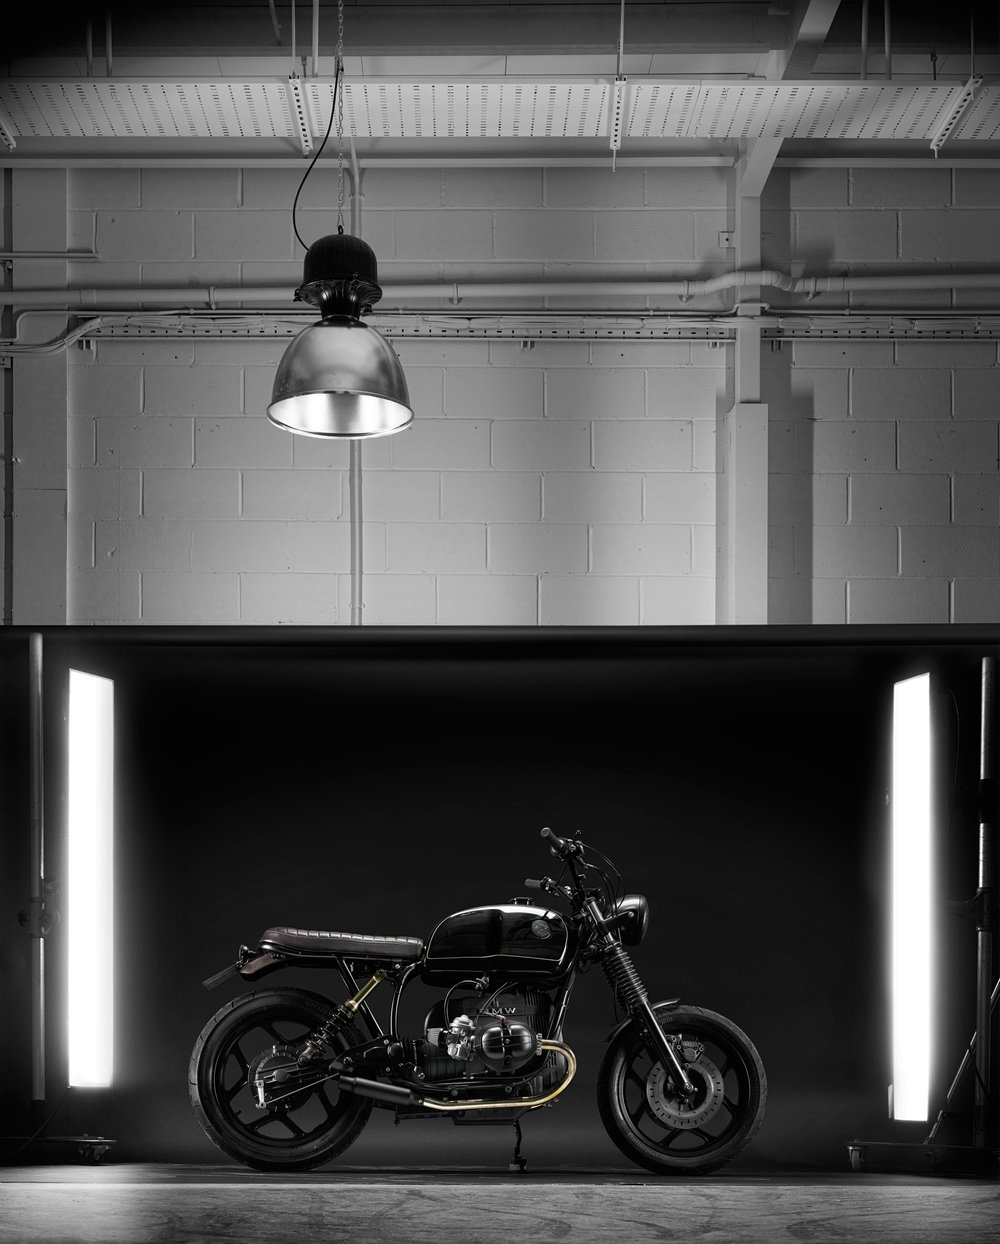 BMW-R80-BLACK-1-copy.jpg